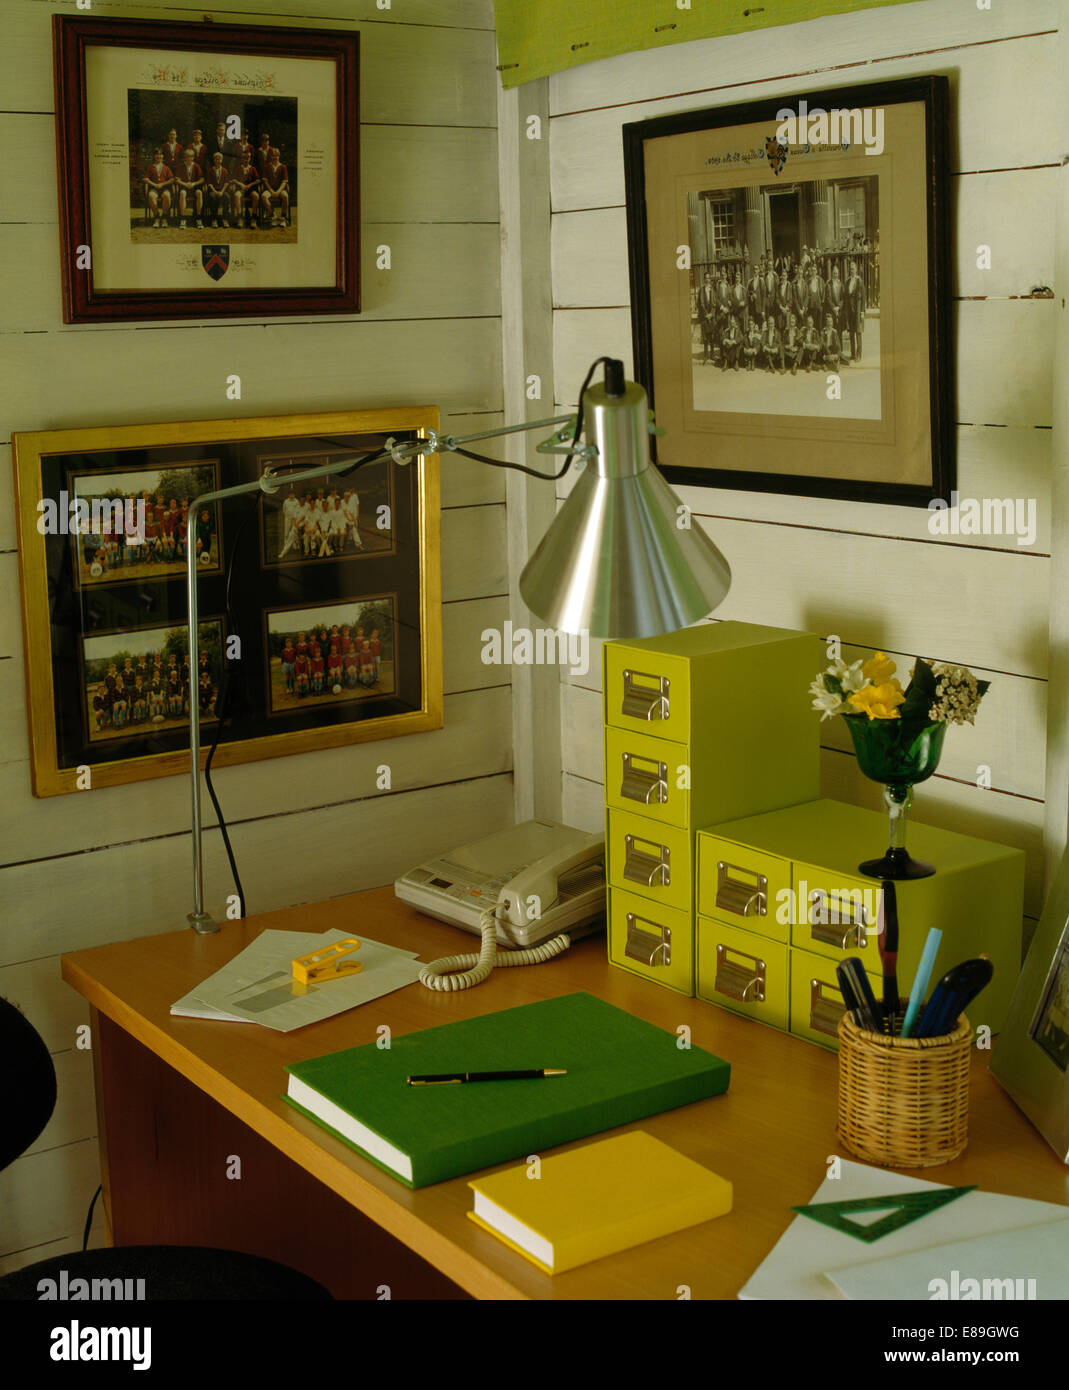 Framed photographs on walls above desk with small yellow